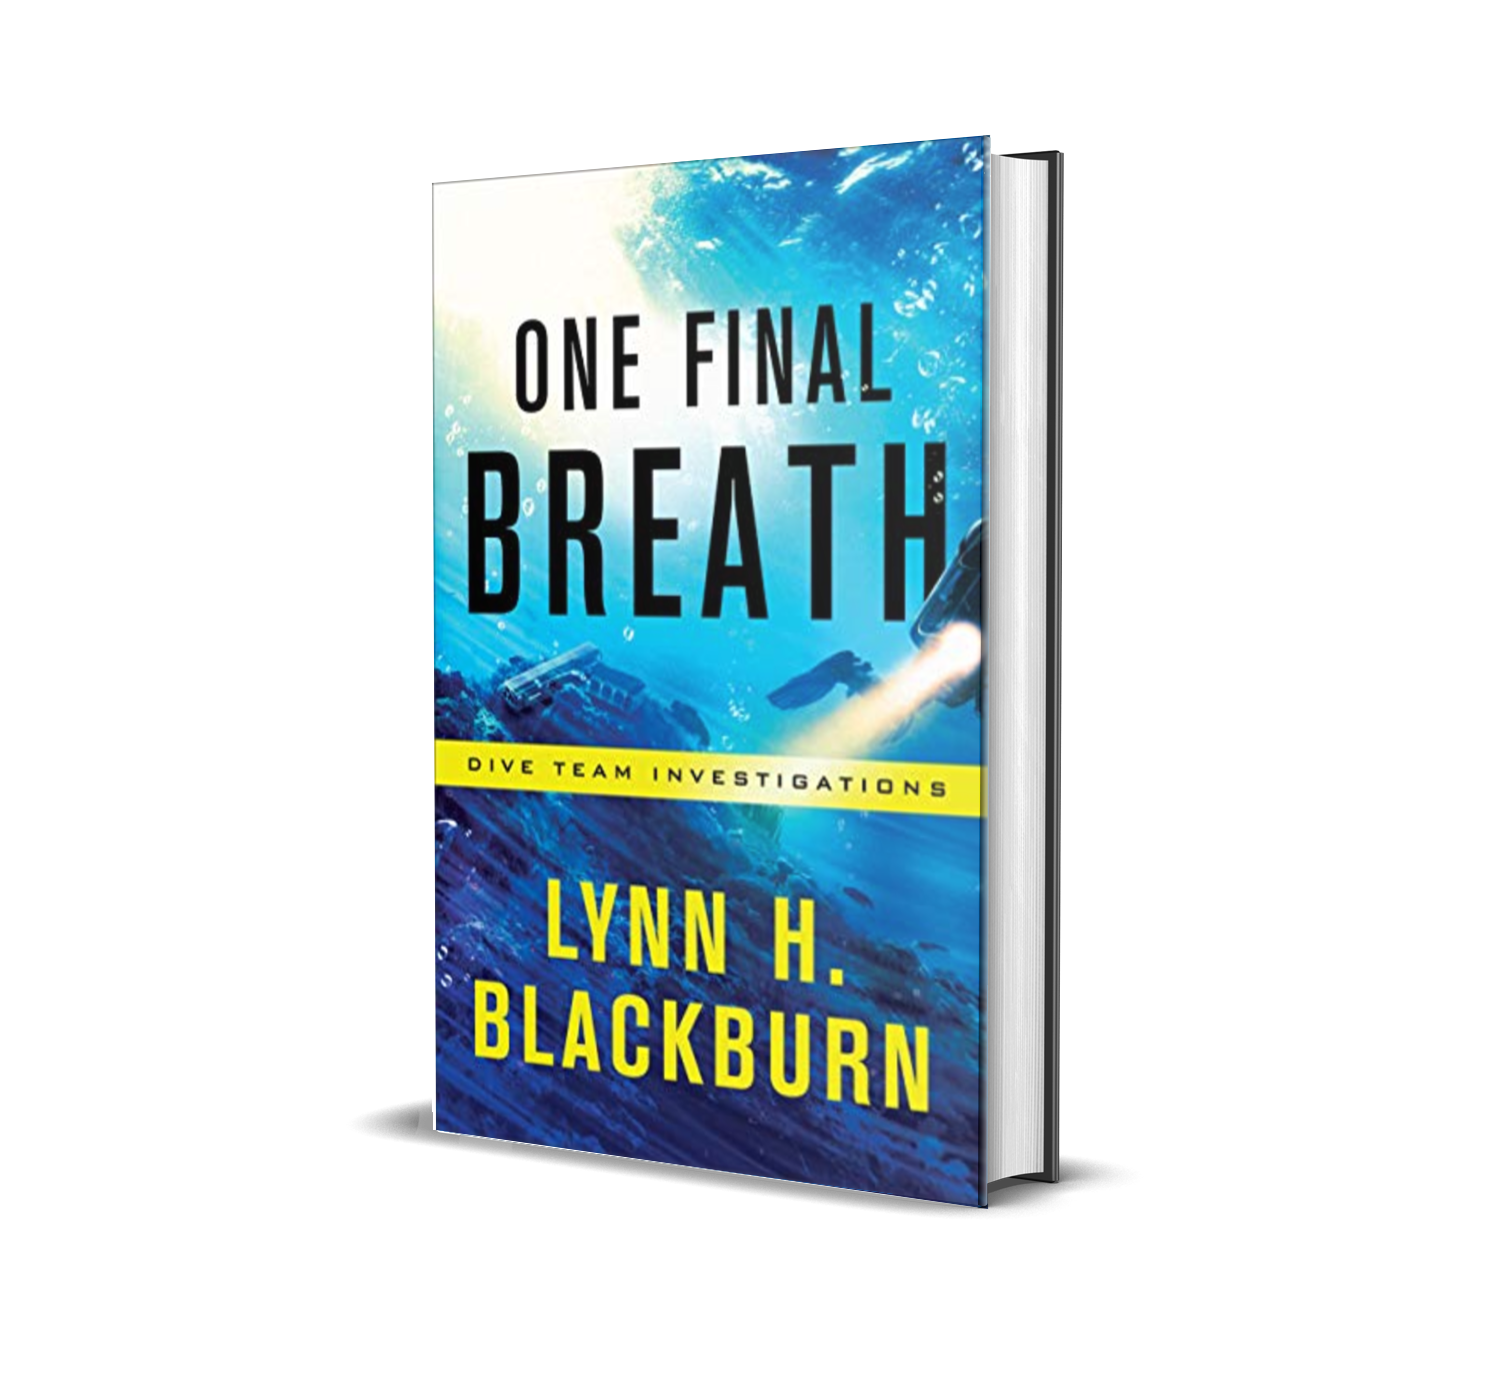 One Final Breath by Lynn H. Blackburn